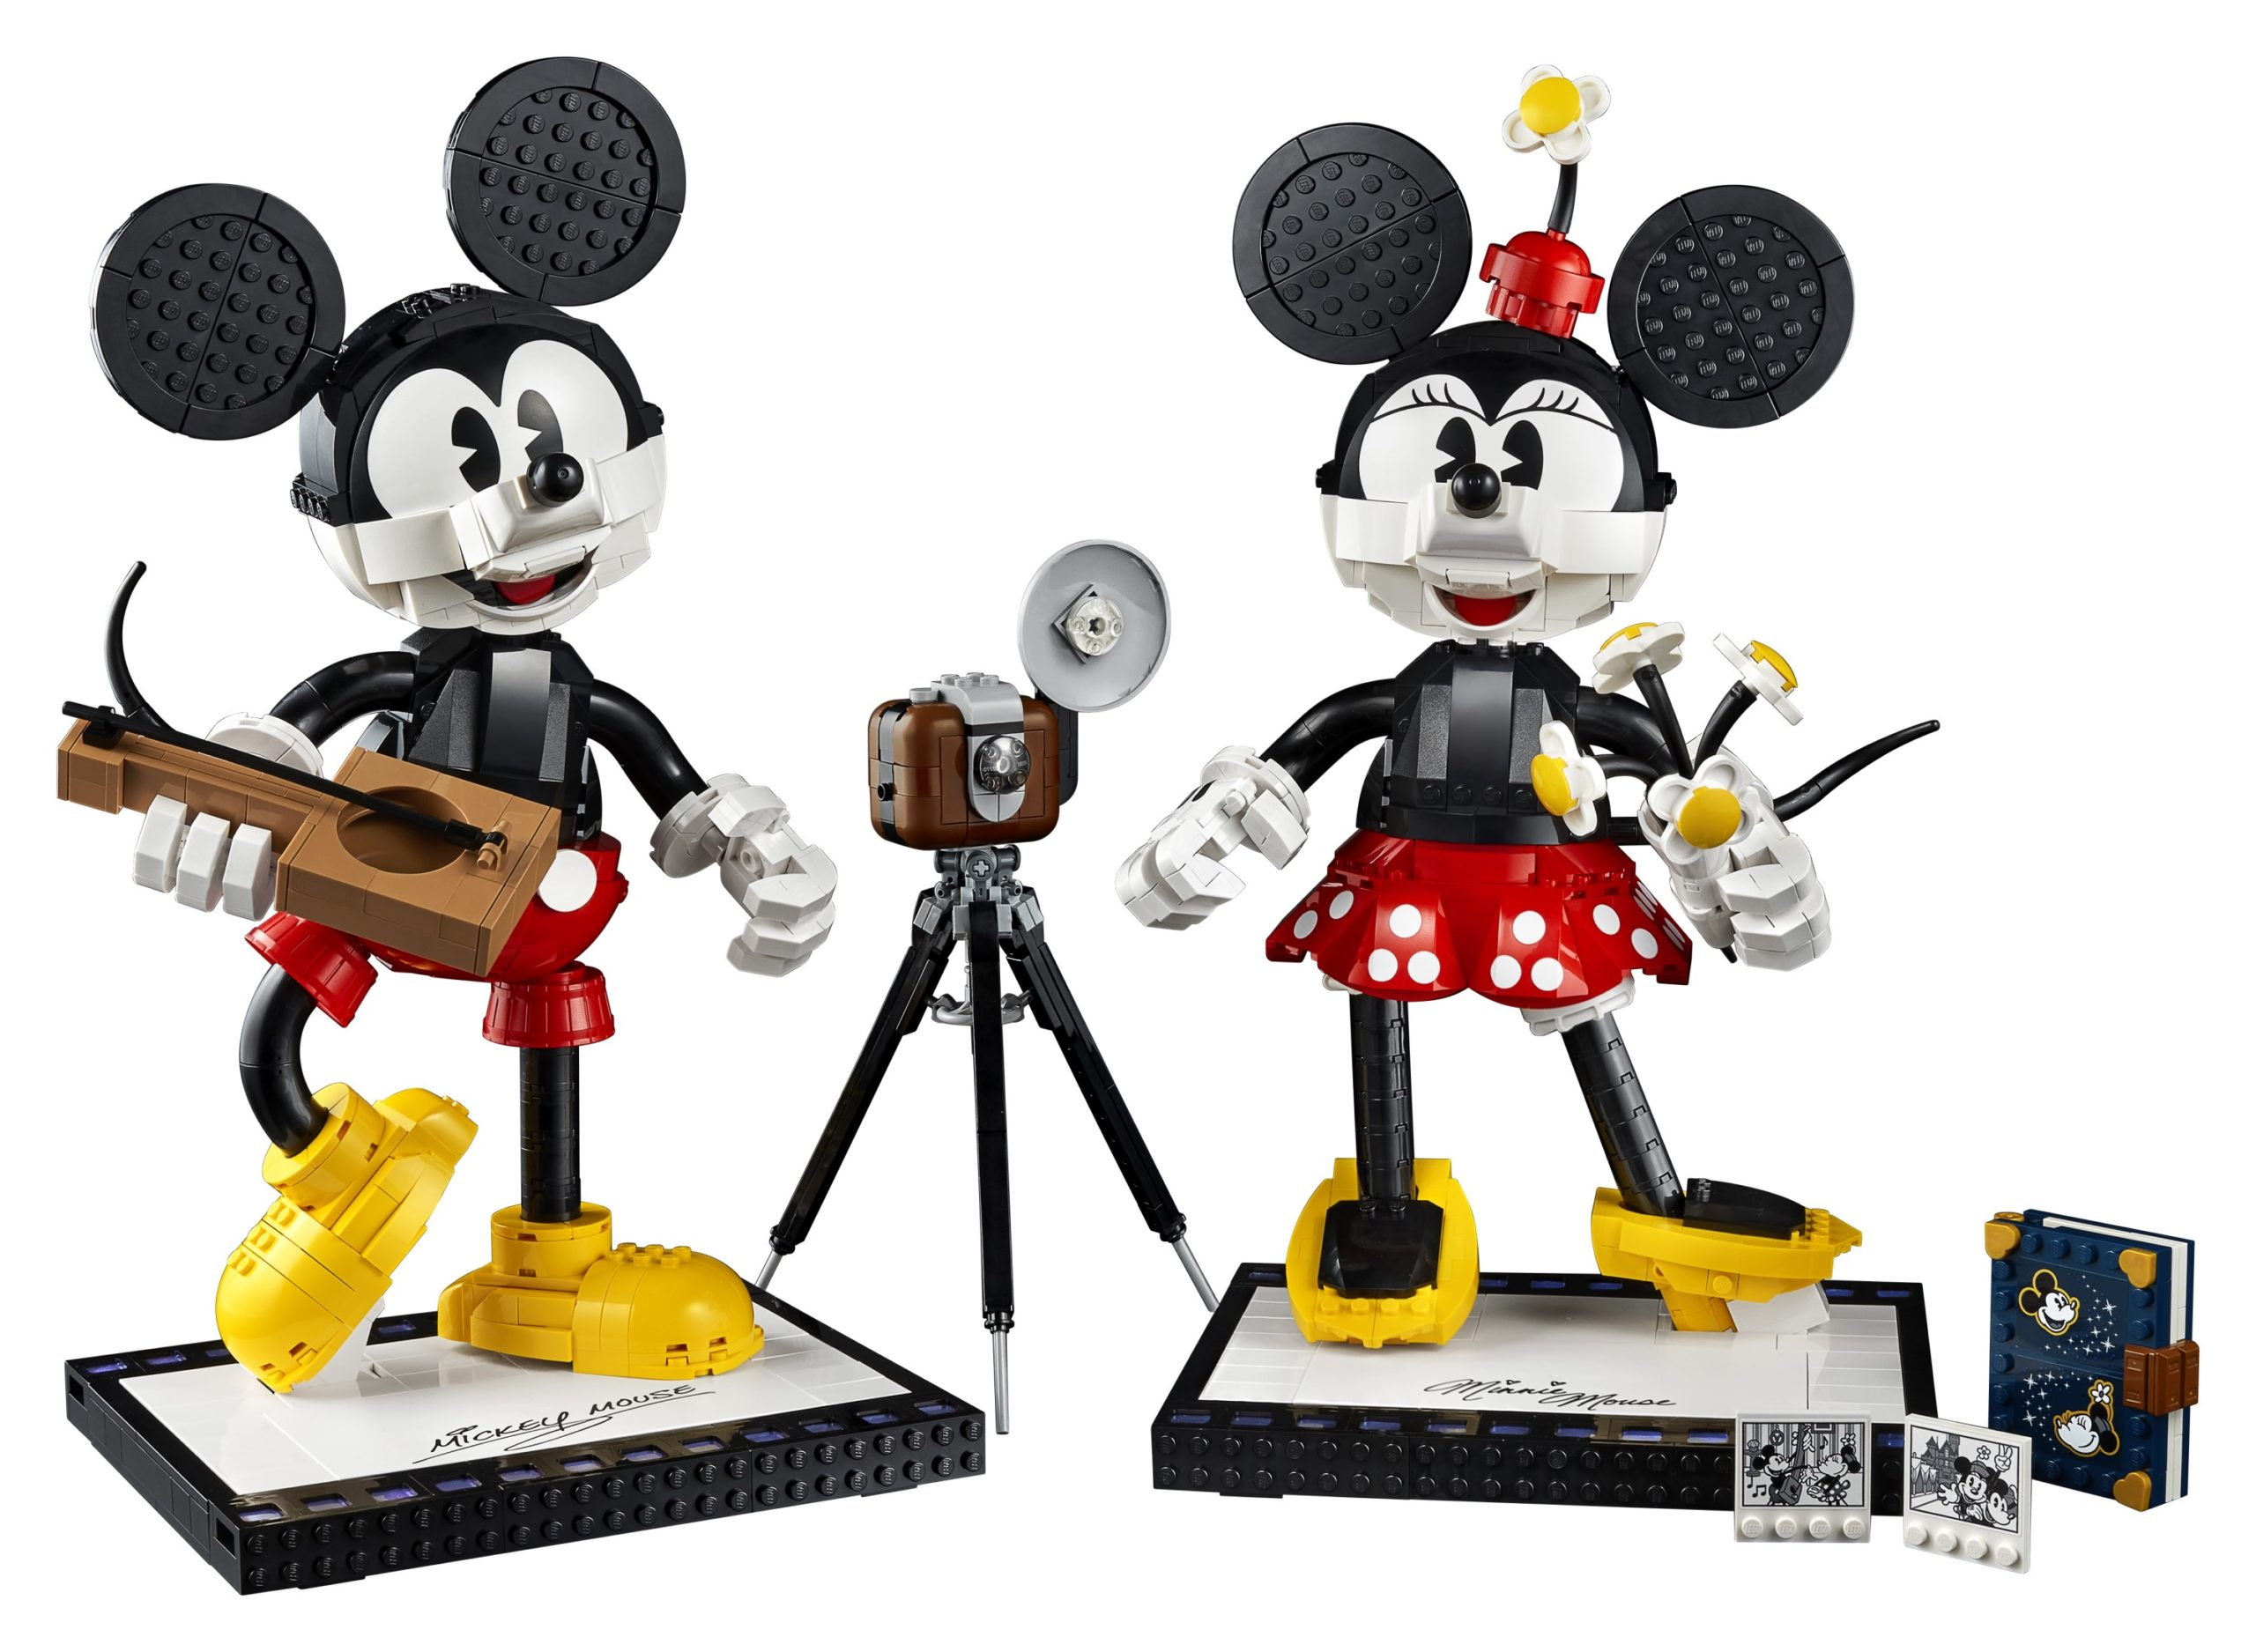 Lego Unveils Classic Mickey And Minnie Mouse Buildable Figures For Adults Geekspin